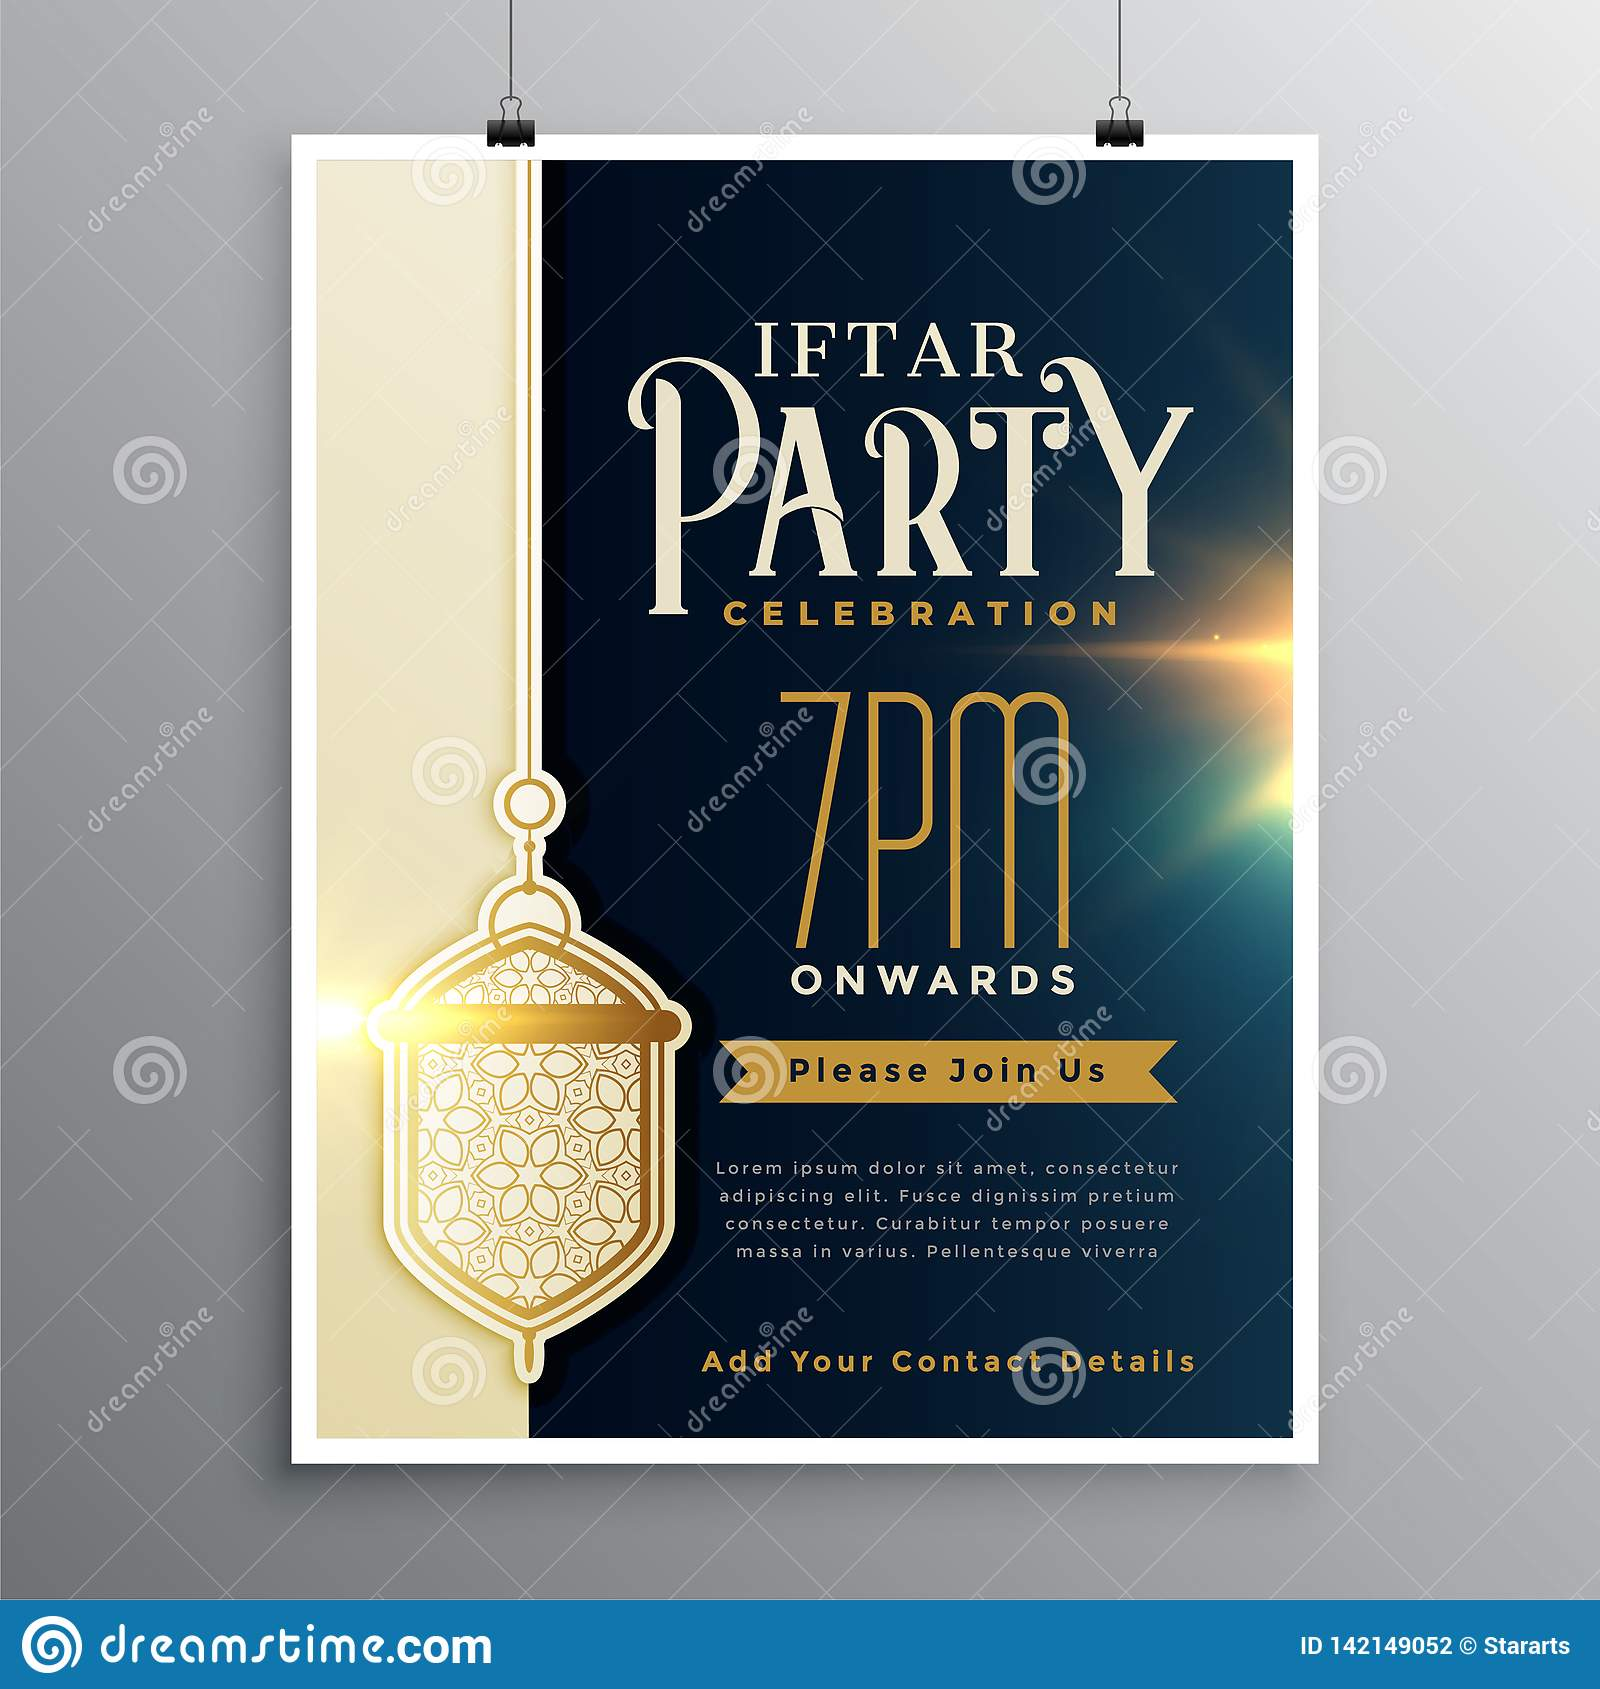 Iftar Meal Party Invitation Template Stock Vector - Illustration